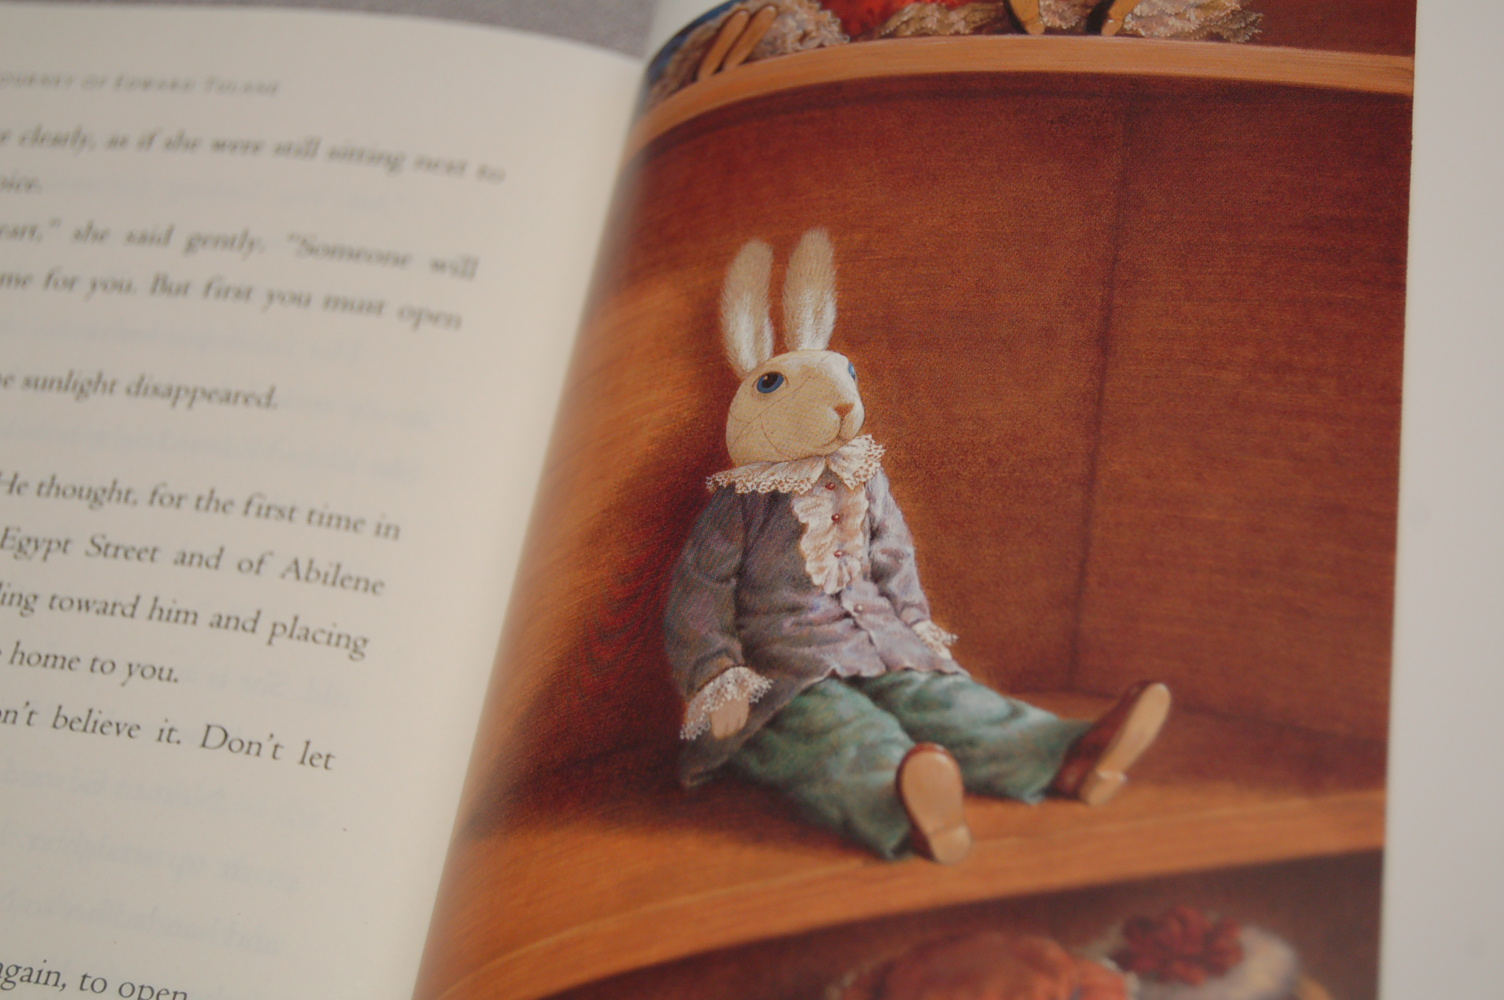 The miraculous journey of edward tulane book report